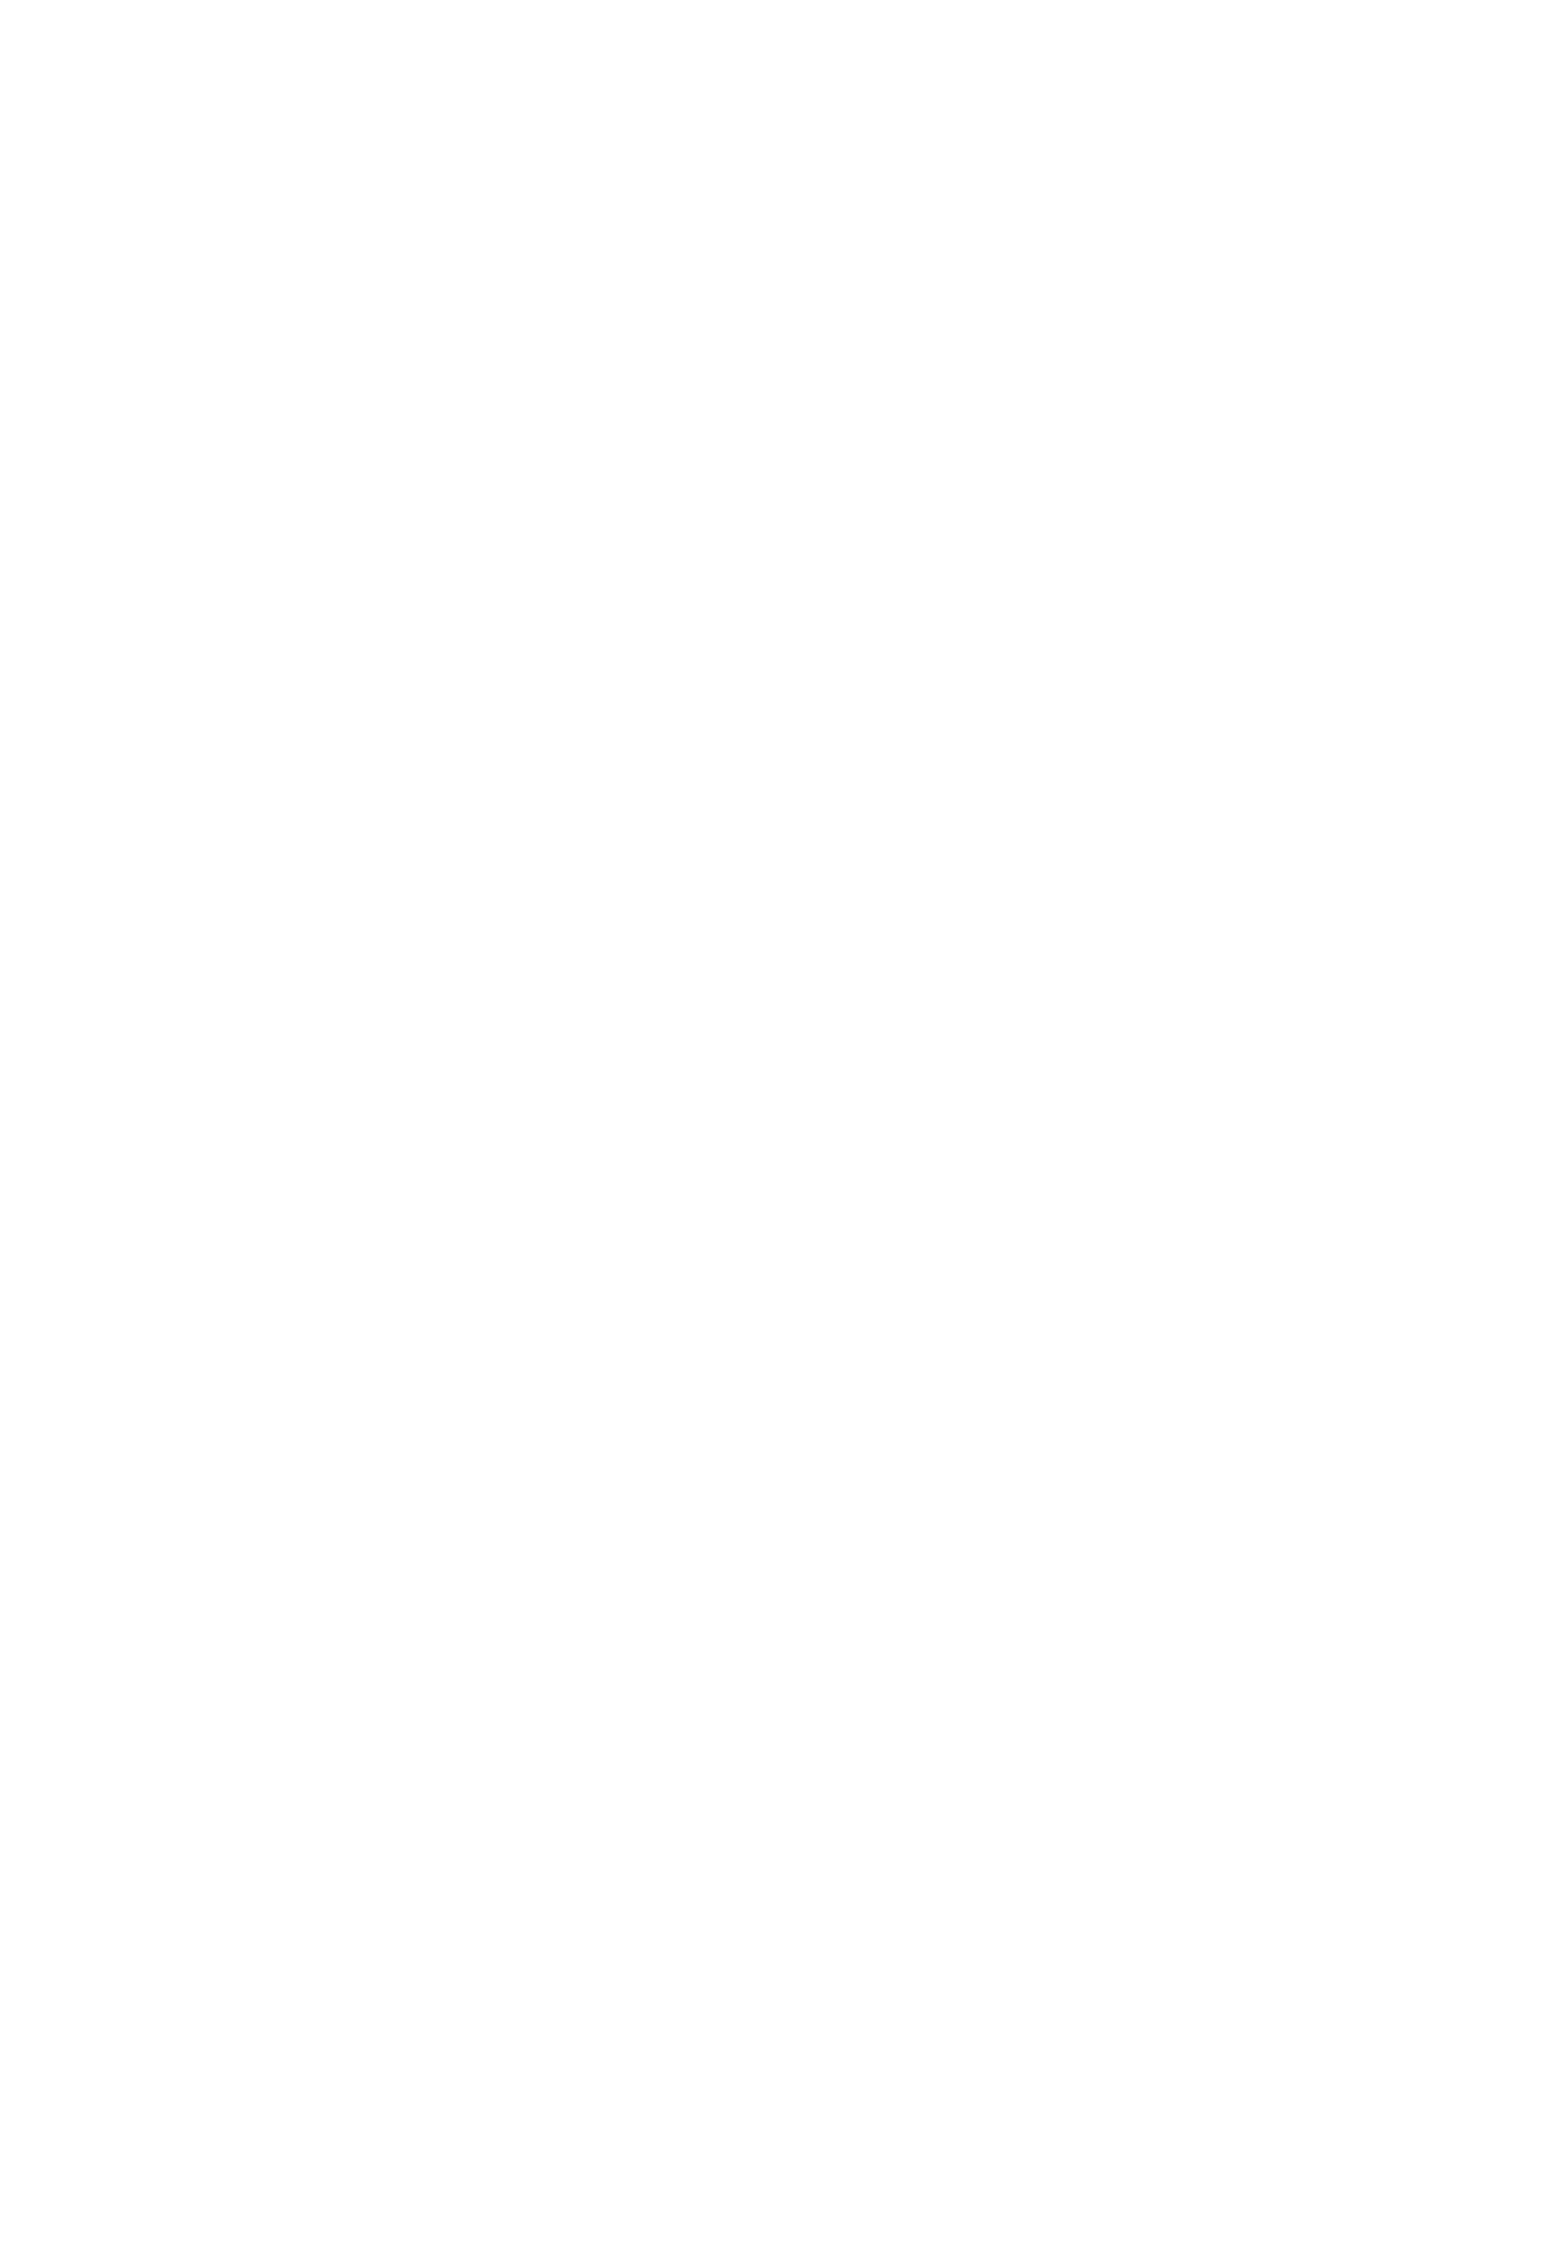 How Big is a Nanosatellite?